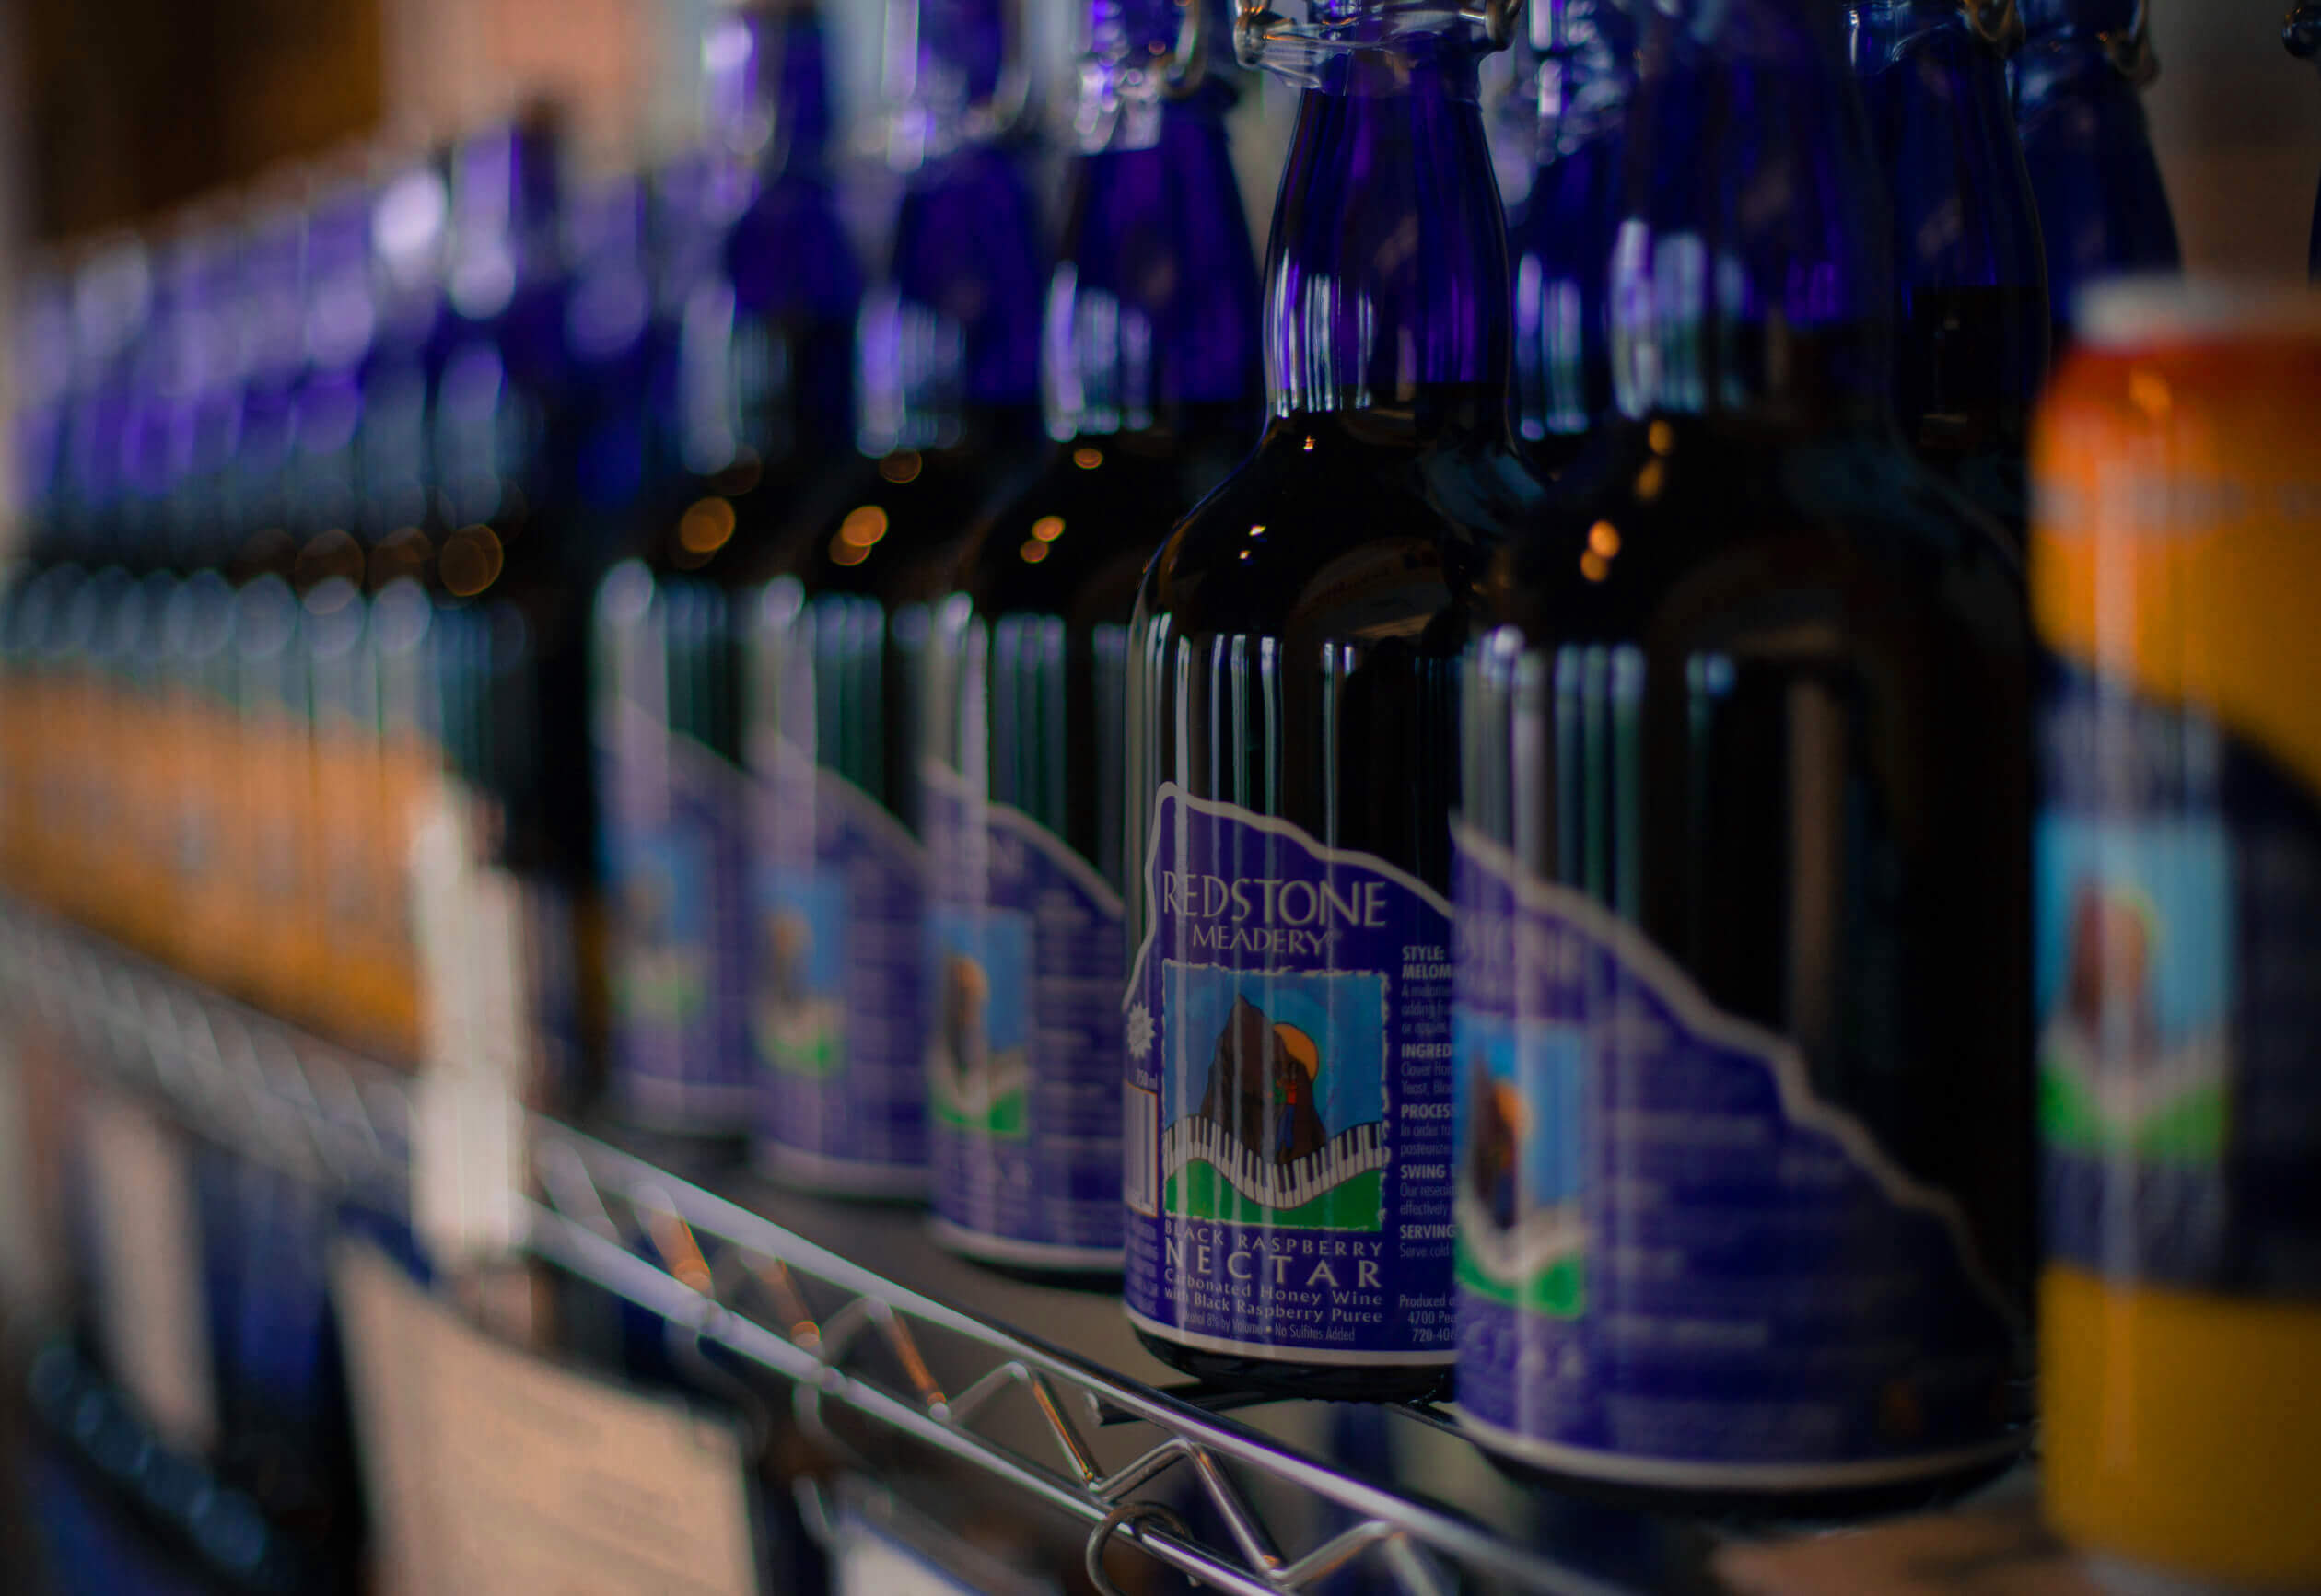 Blue bottles of mead on a shelf